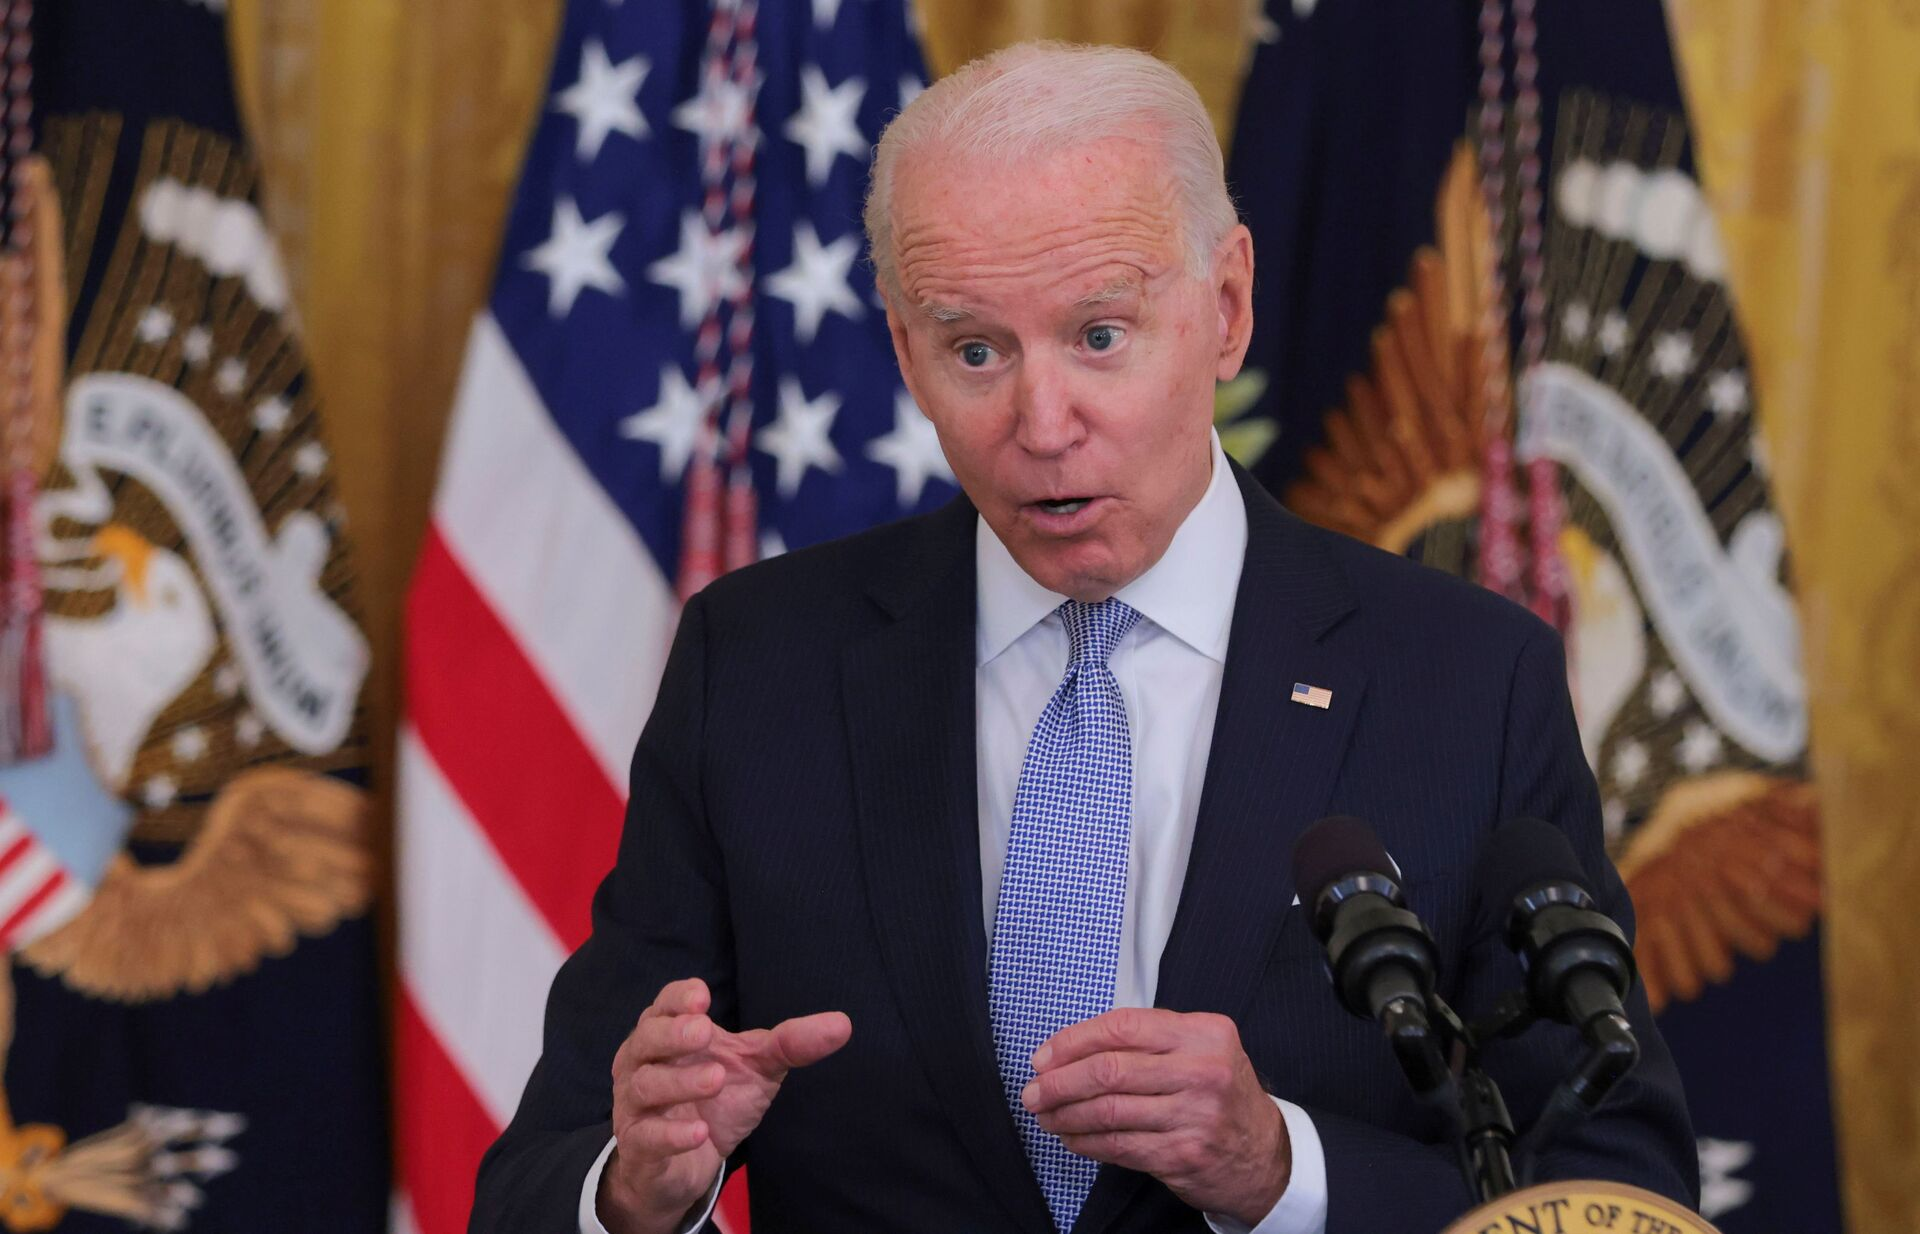 U.S. President Joe Biden answers questions about the pace of coronavirus disease (COVID-19) vaccinations during remarks at the White House in Washington - Sputnik International, 1920, 07.09.2021